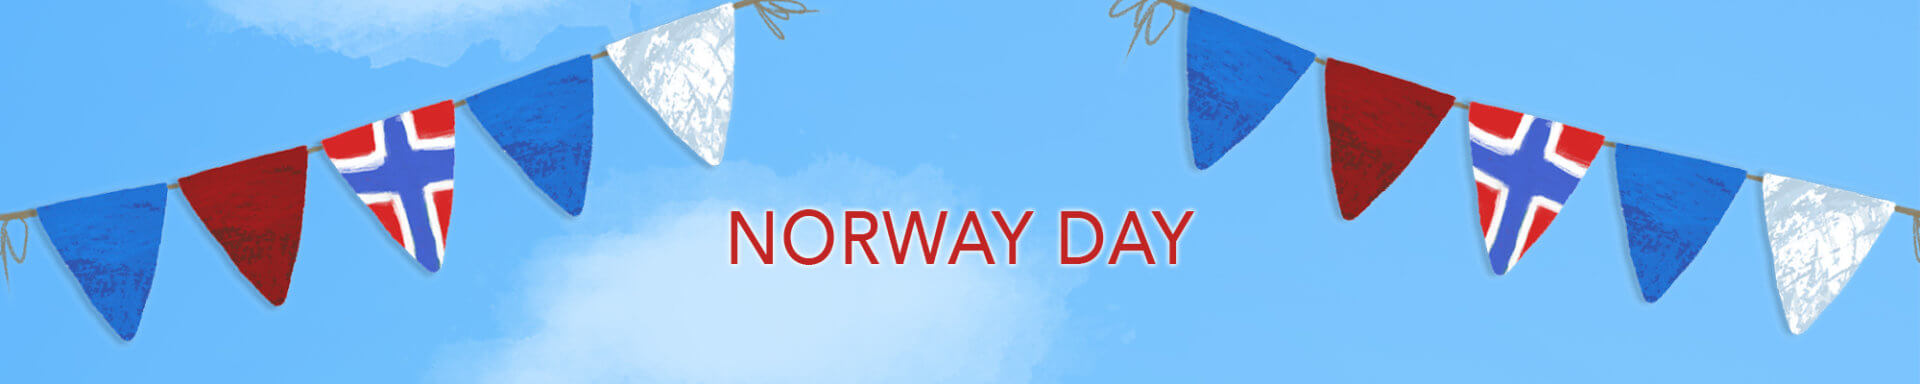 Norway Day Phone Cases